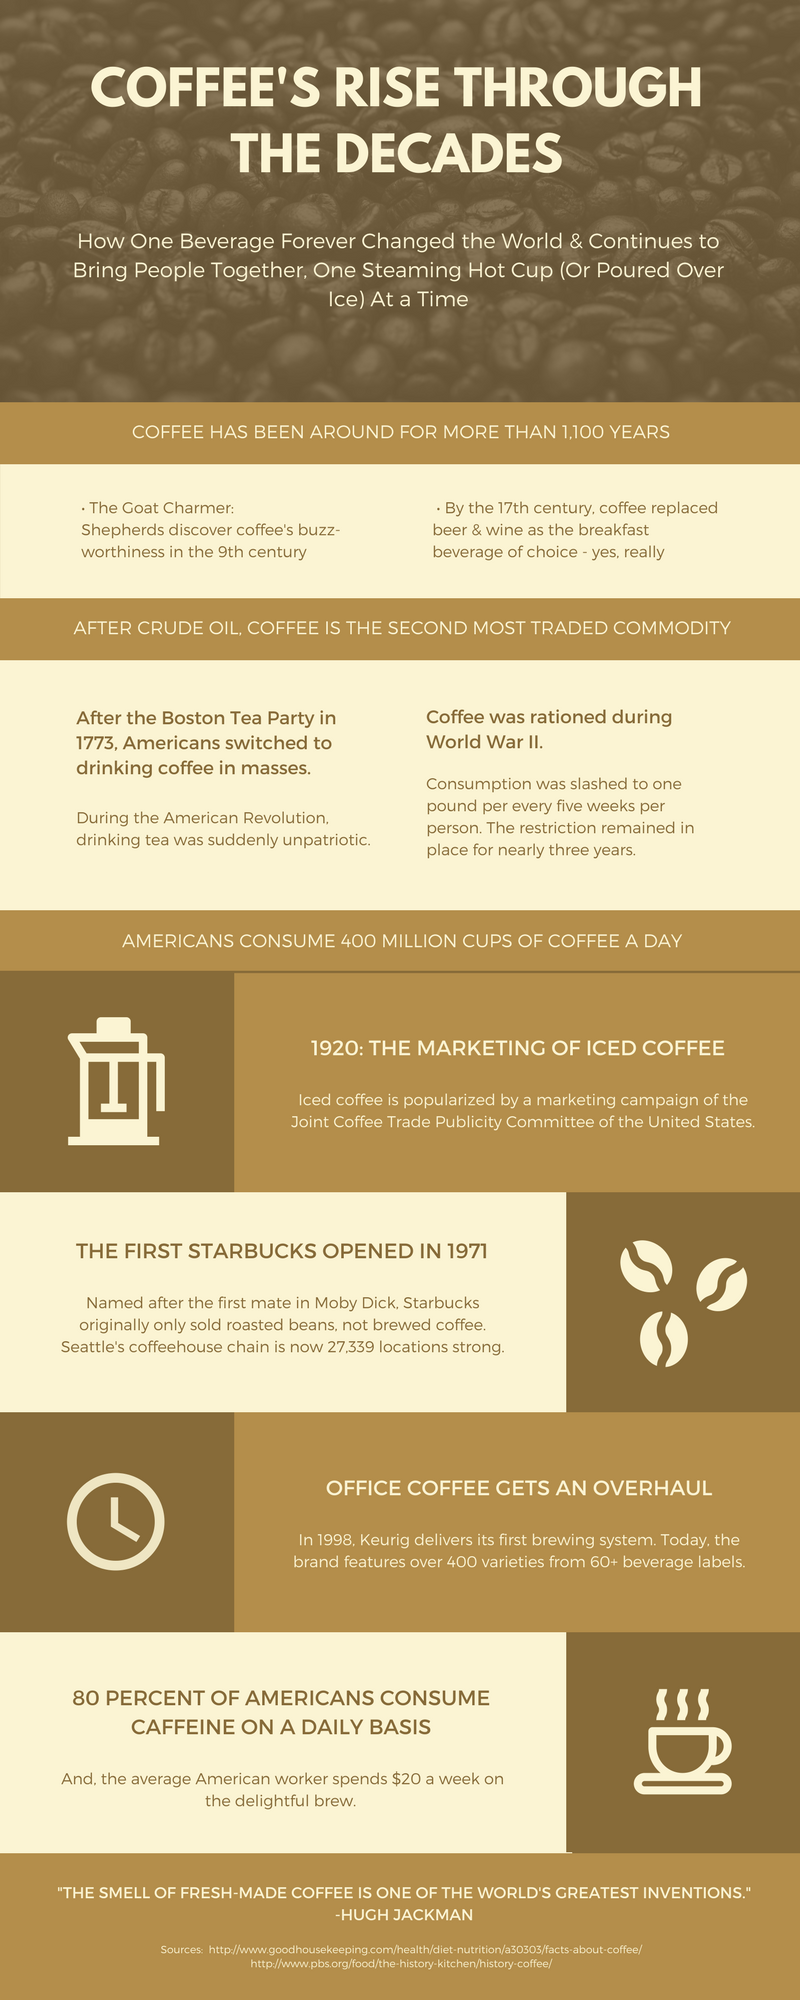 A Visual Look at Coffee's Rise Through the Decades